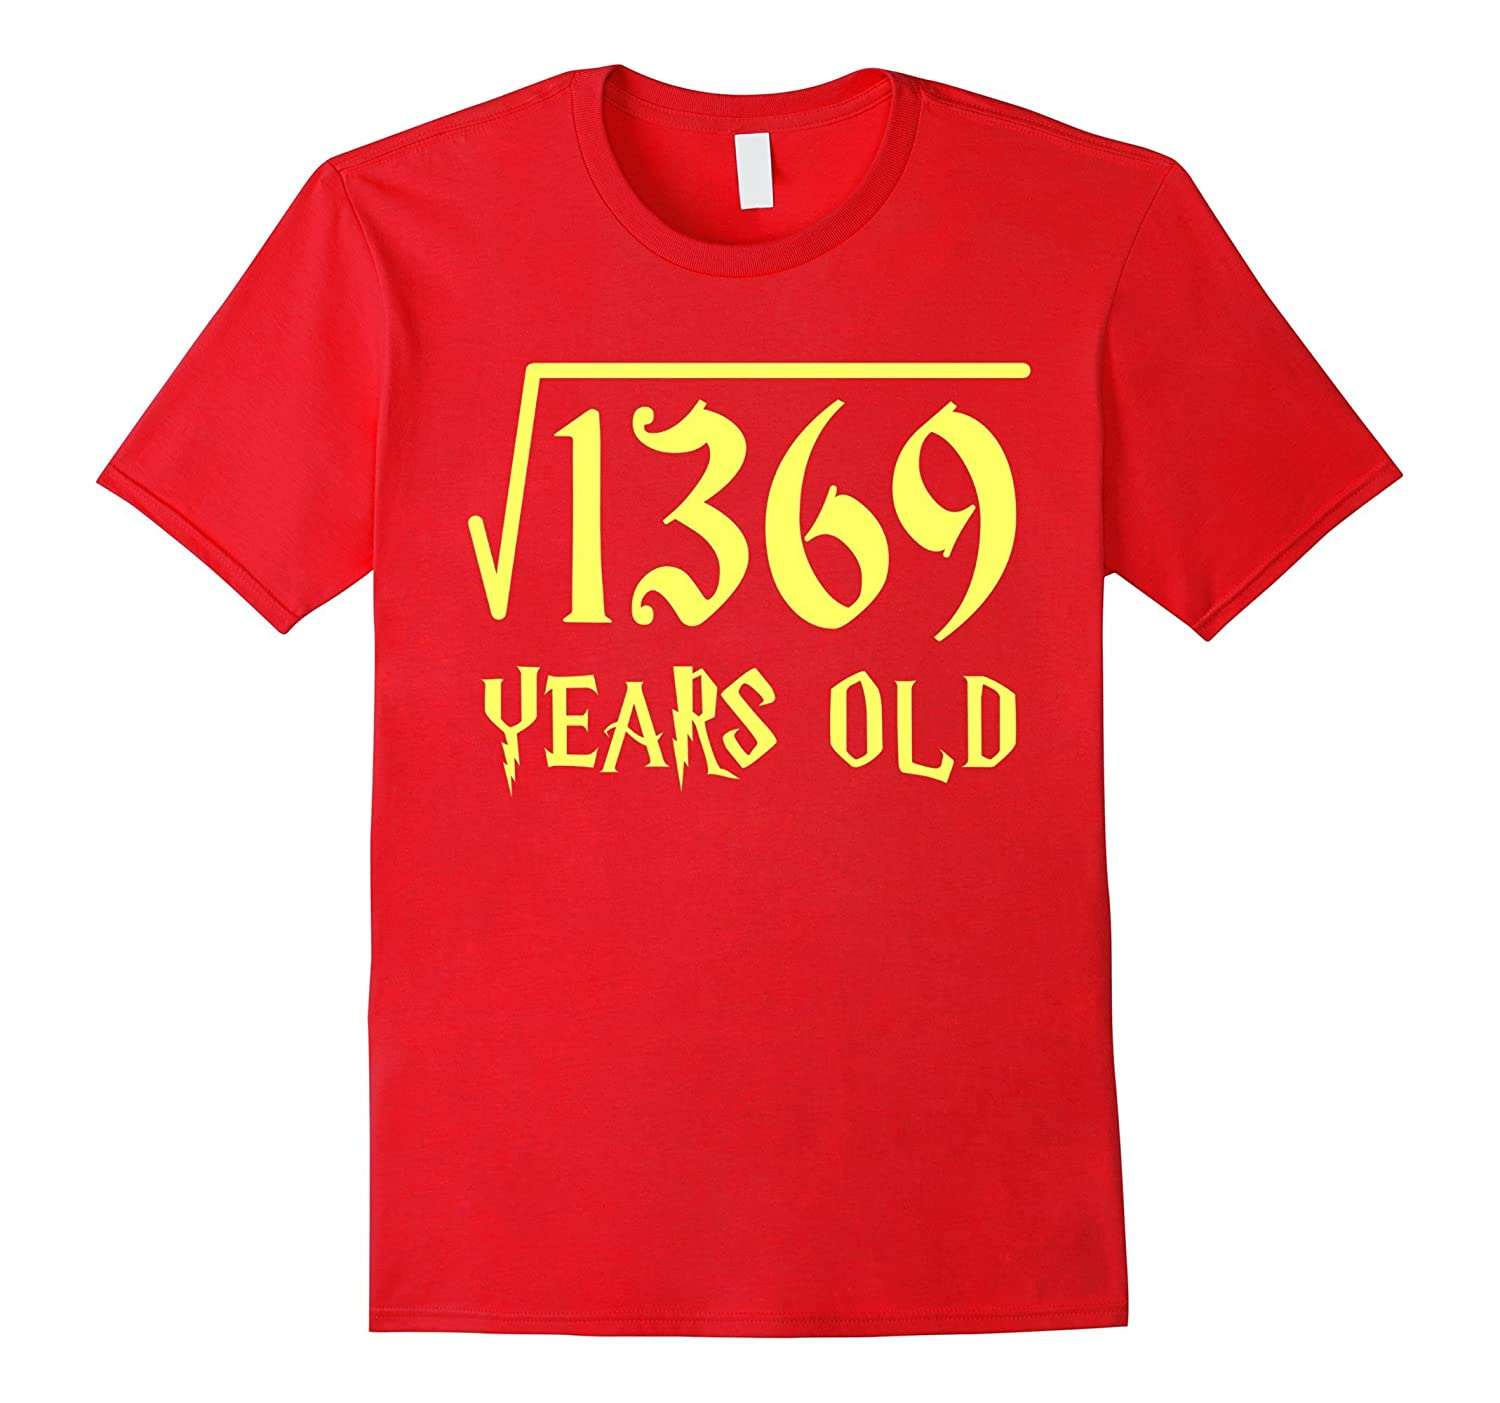 Square Root of 1369 37 Years Old 37th Birthday T-Shirt-CL